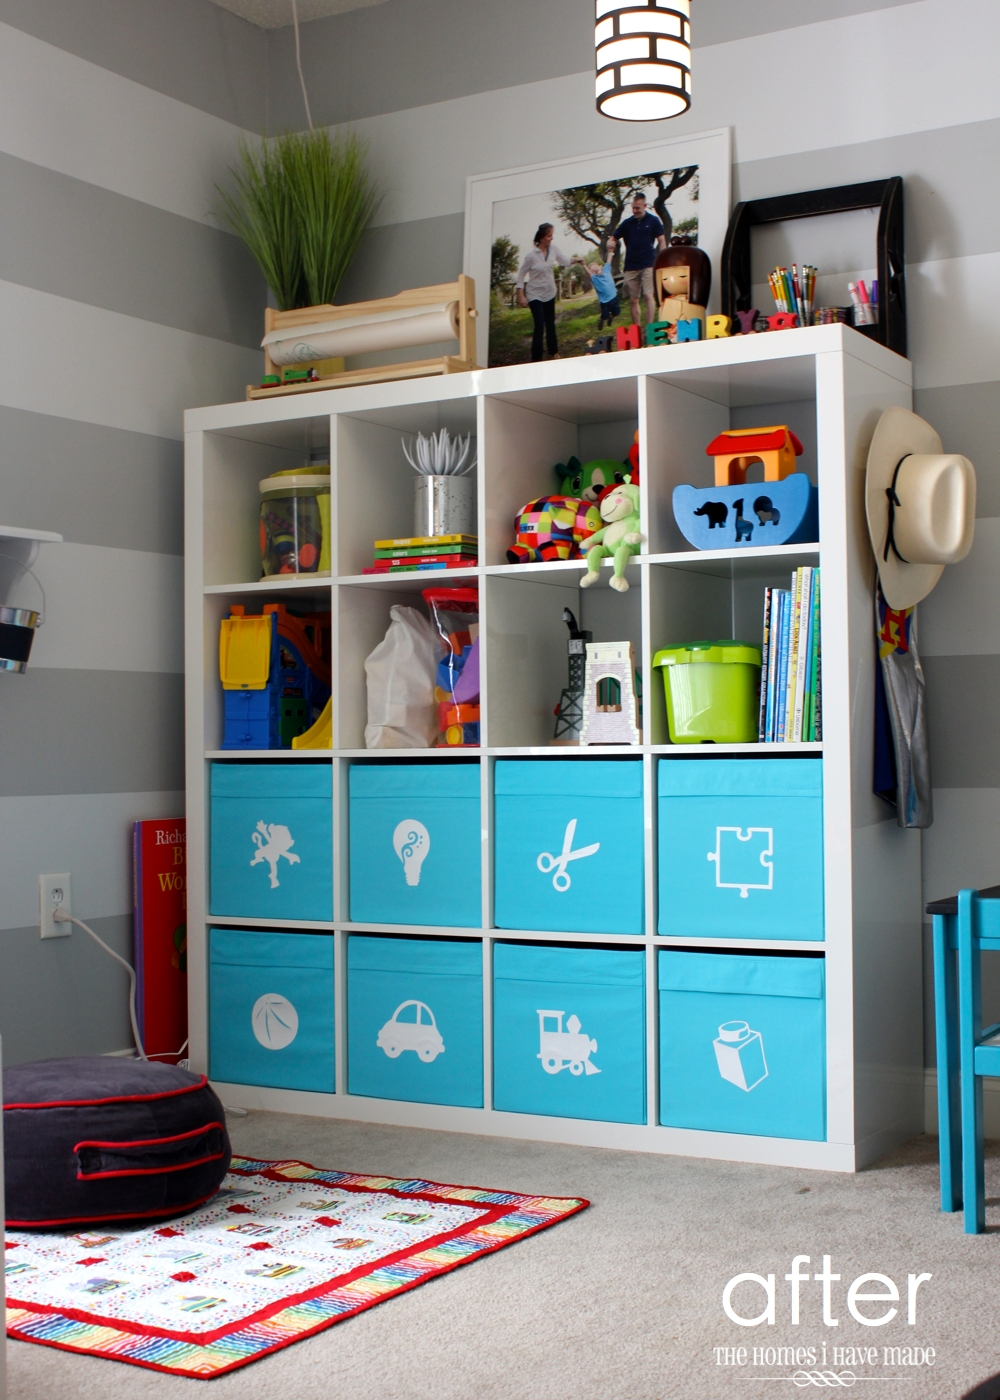 Toy Organizer Ikea Toy Storage In An Ikea Expedit | The Homes I Have Made